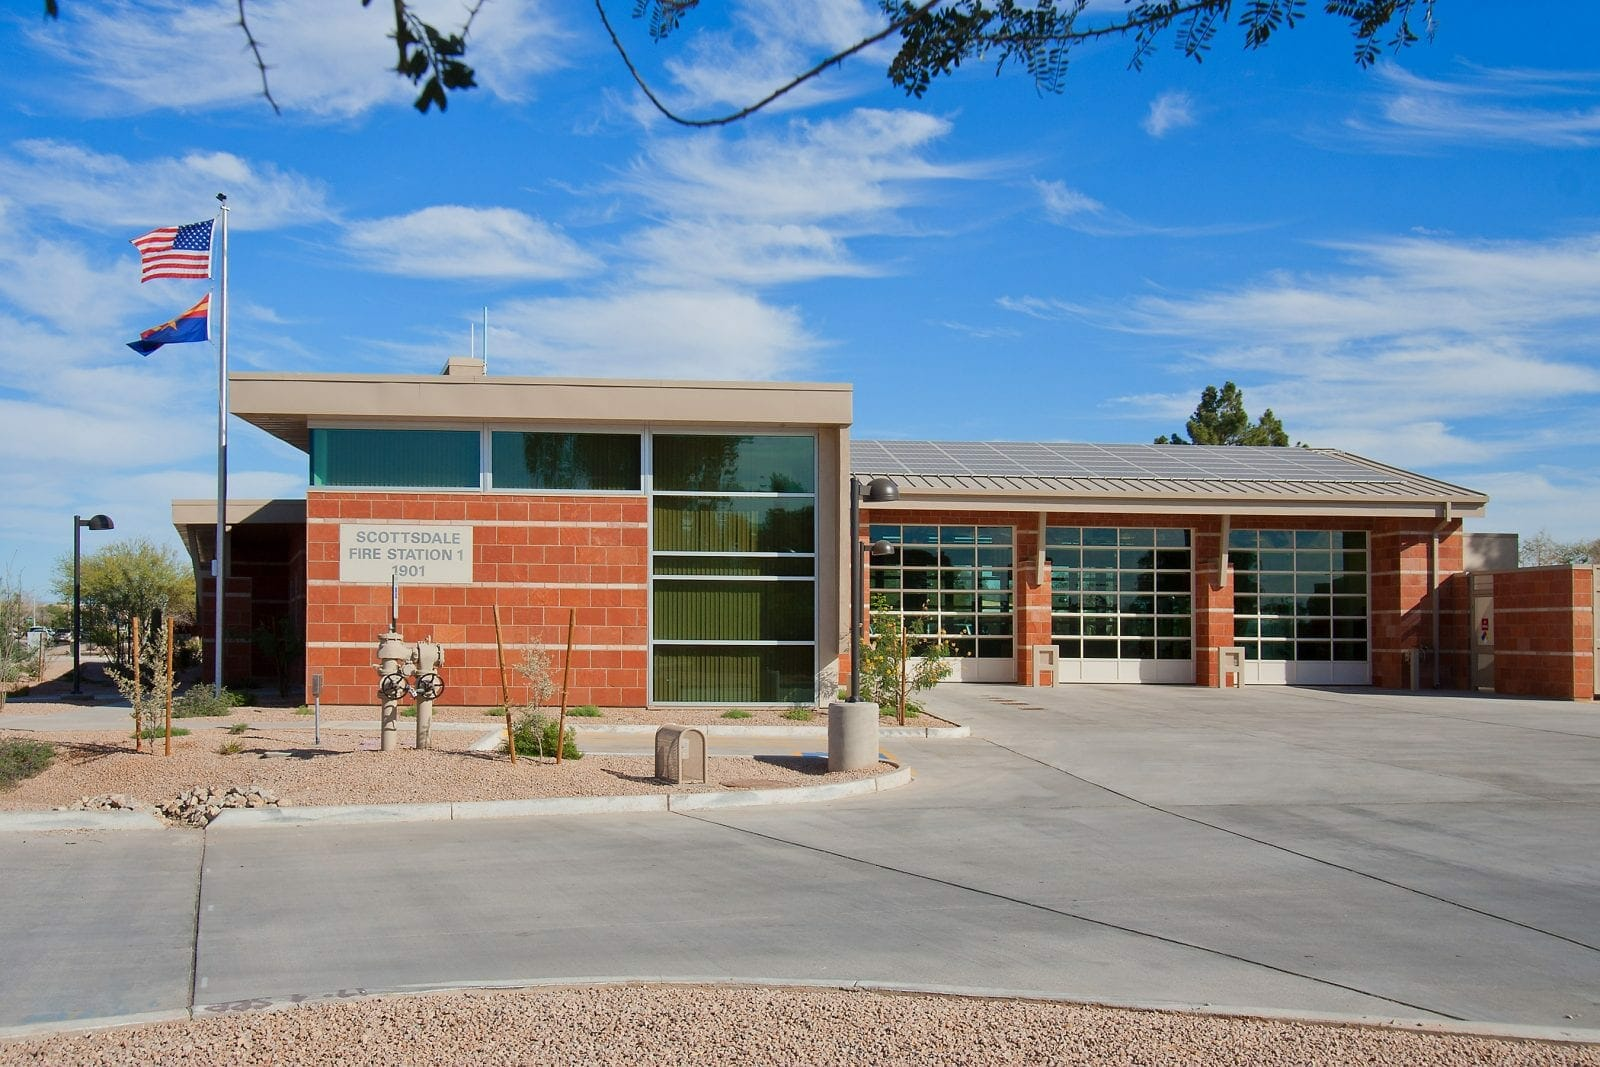 City Of Scottsdale | Scottsdale Fire Station